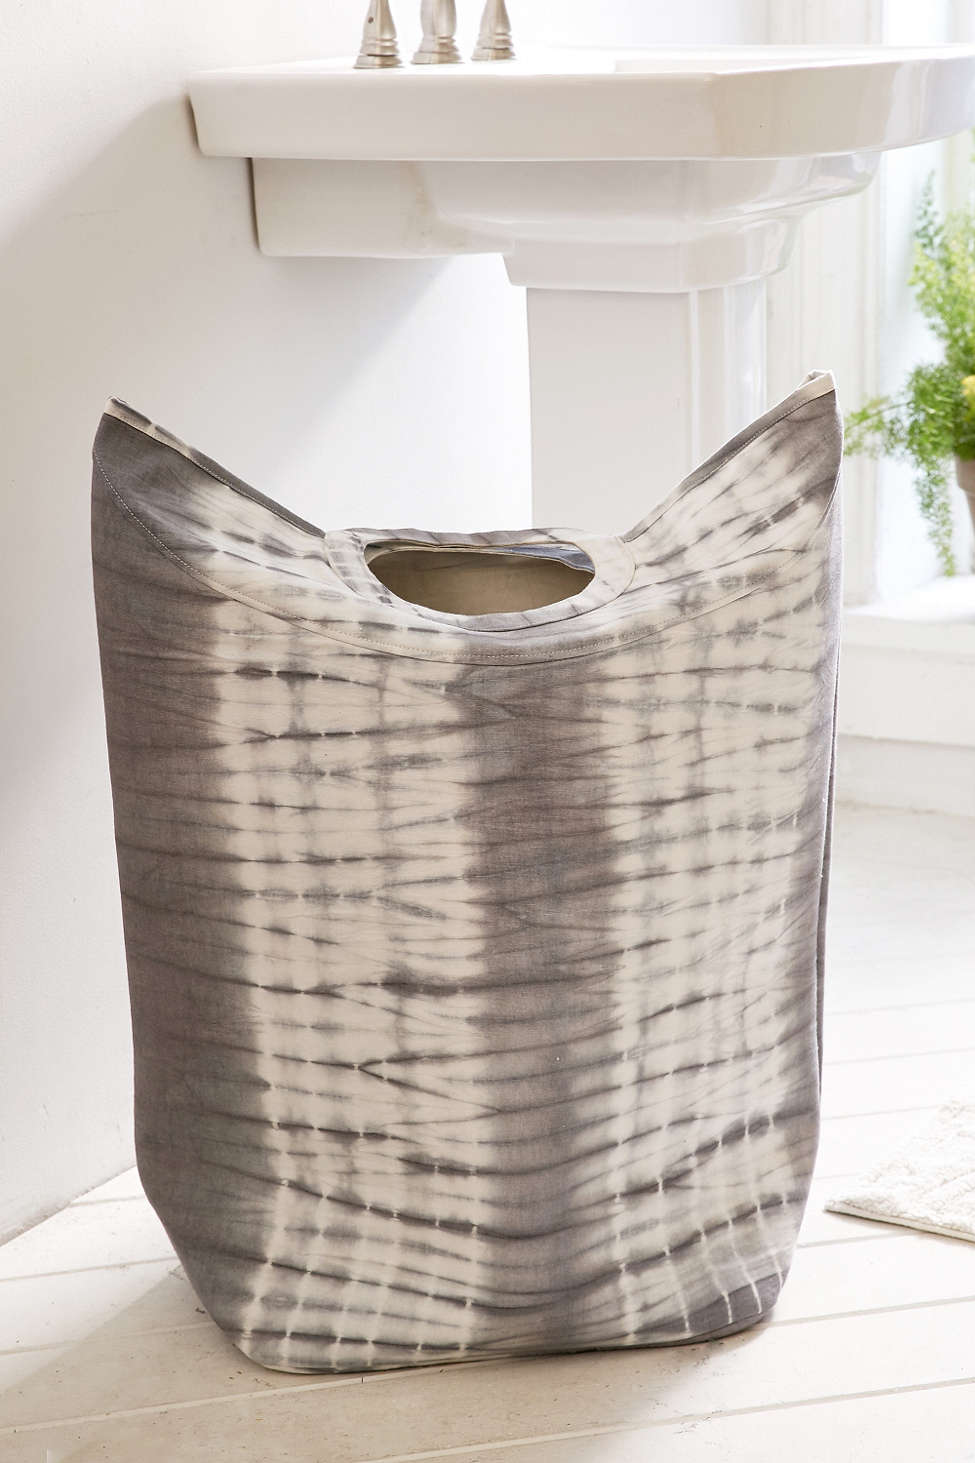 Shibori hamper from Urban Outfitters